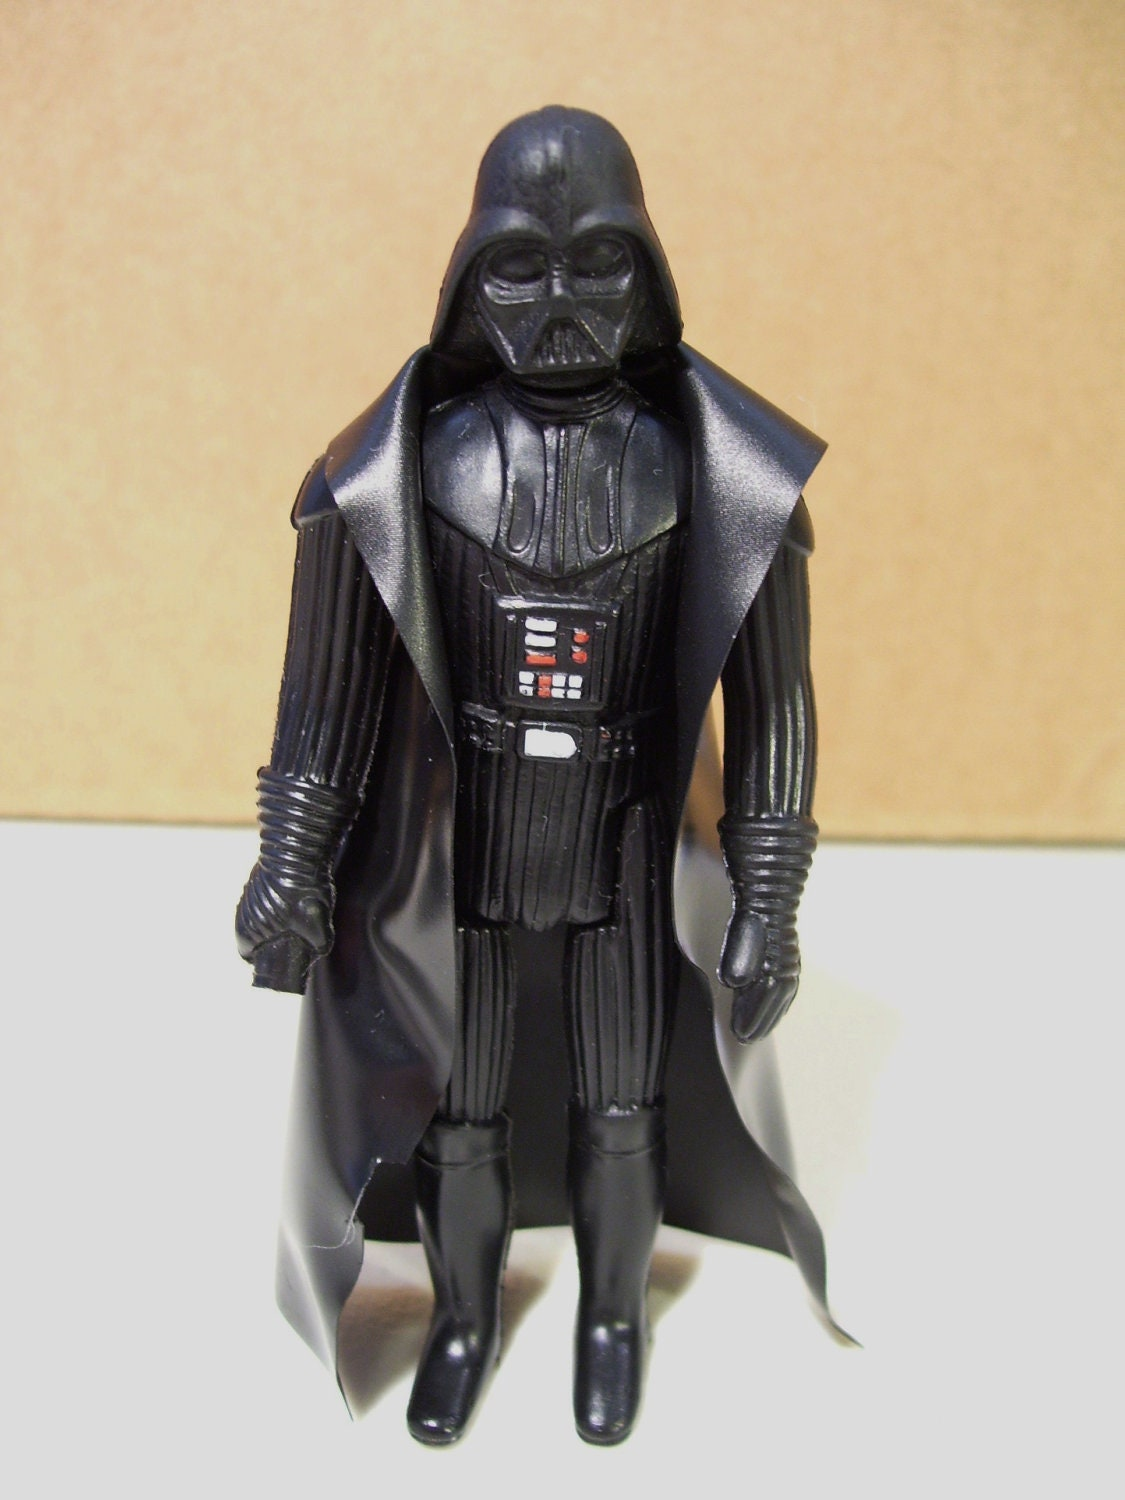 How To Figure Car Payment >> Vintage 1977 Star Wars Darth Vader Action Figure LFL